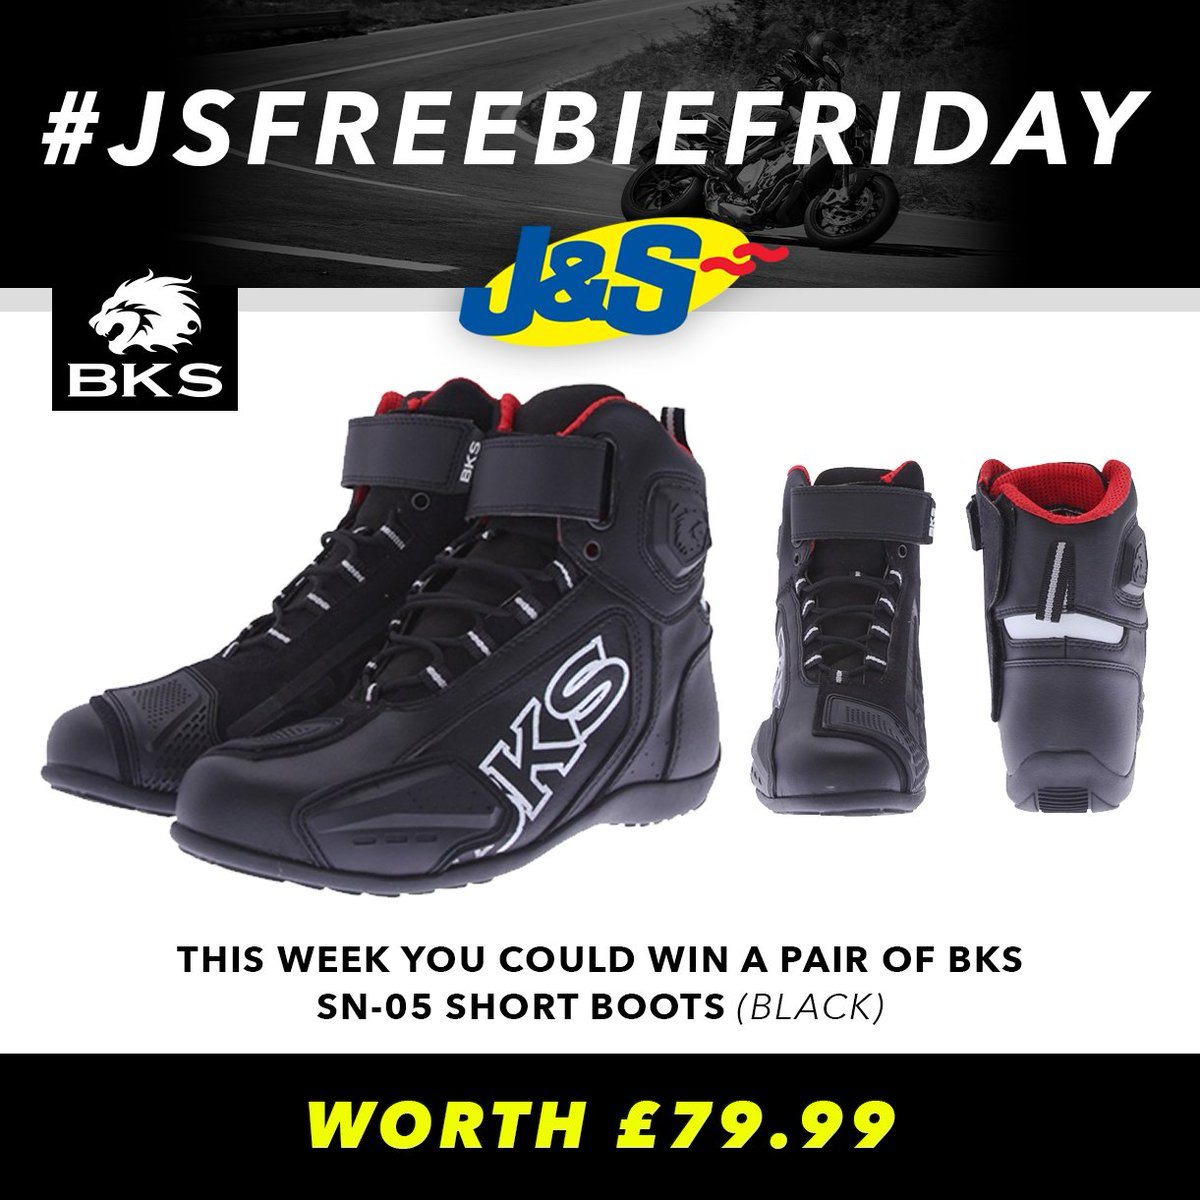 #JSFREEBIEFRIDAY Retweet this and follow us for a chance to win a pair of brand new BKS SN-05 Short Boots worth £79.99. Ends Tues July 10th. You can also enter by signing up to our newsletter here:  Happy Friday everyone!